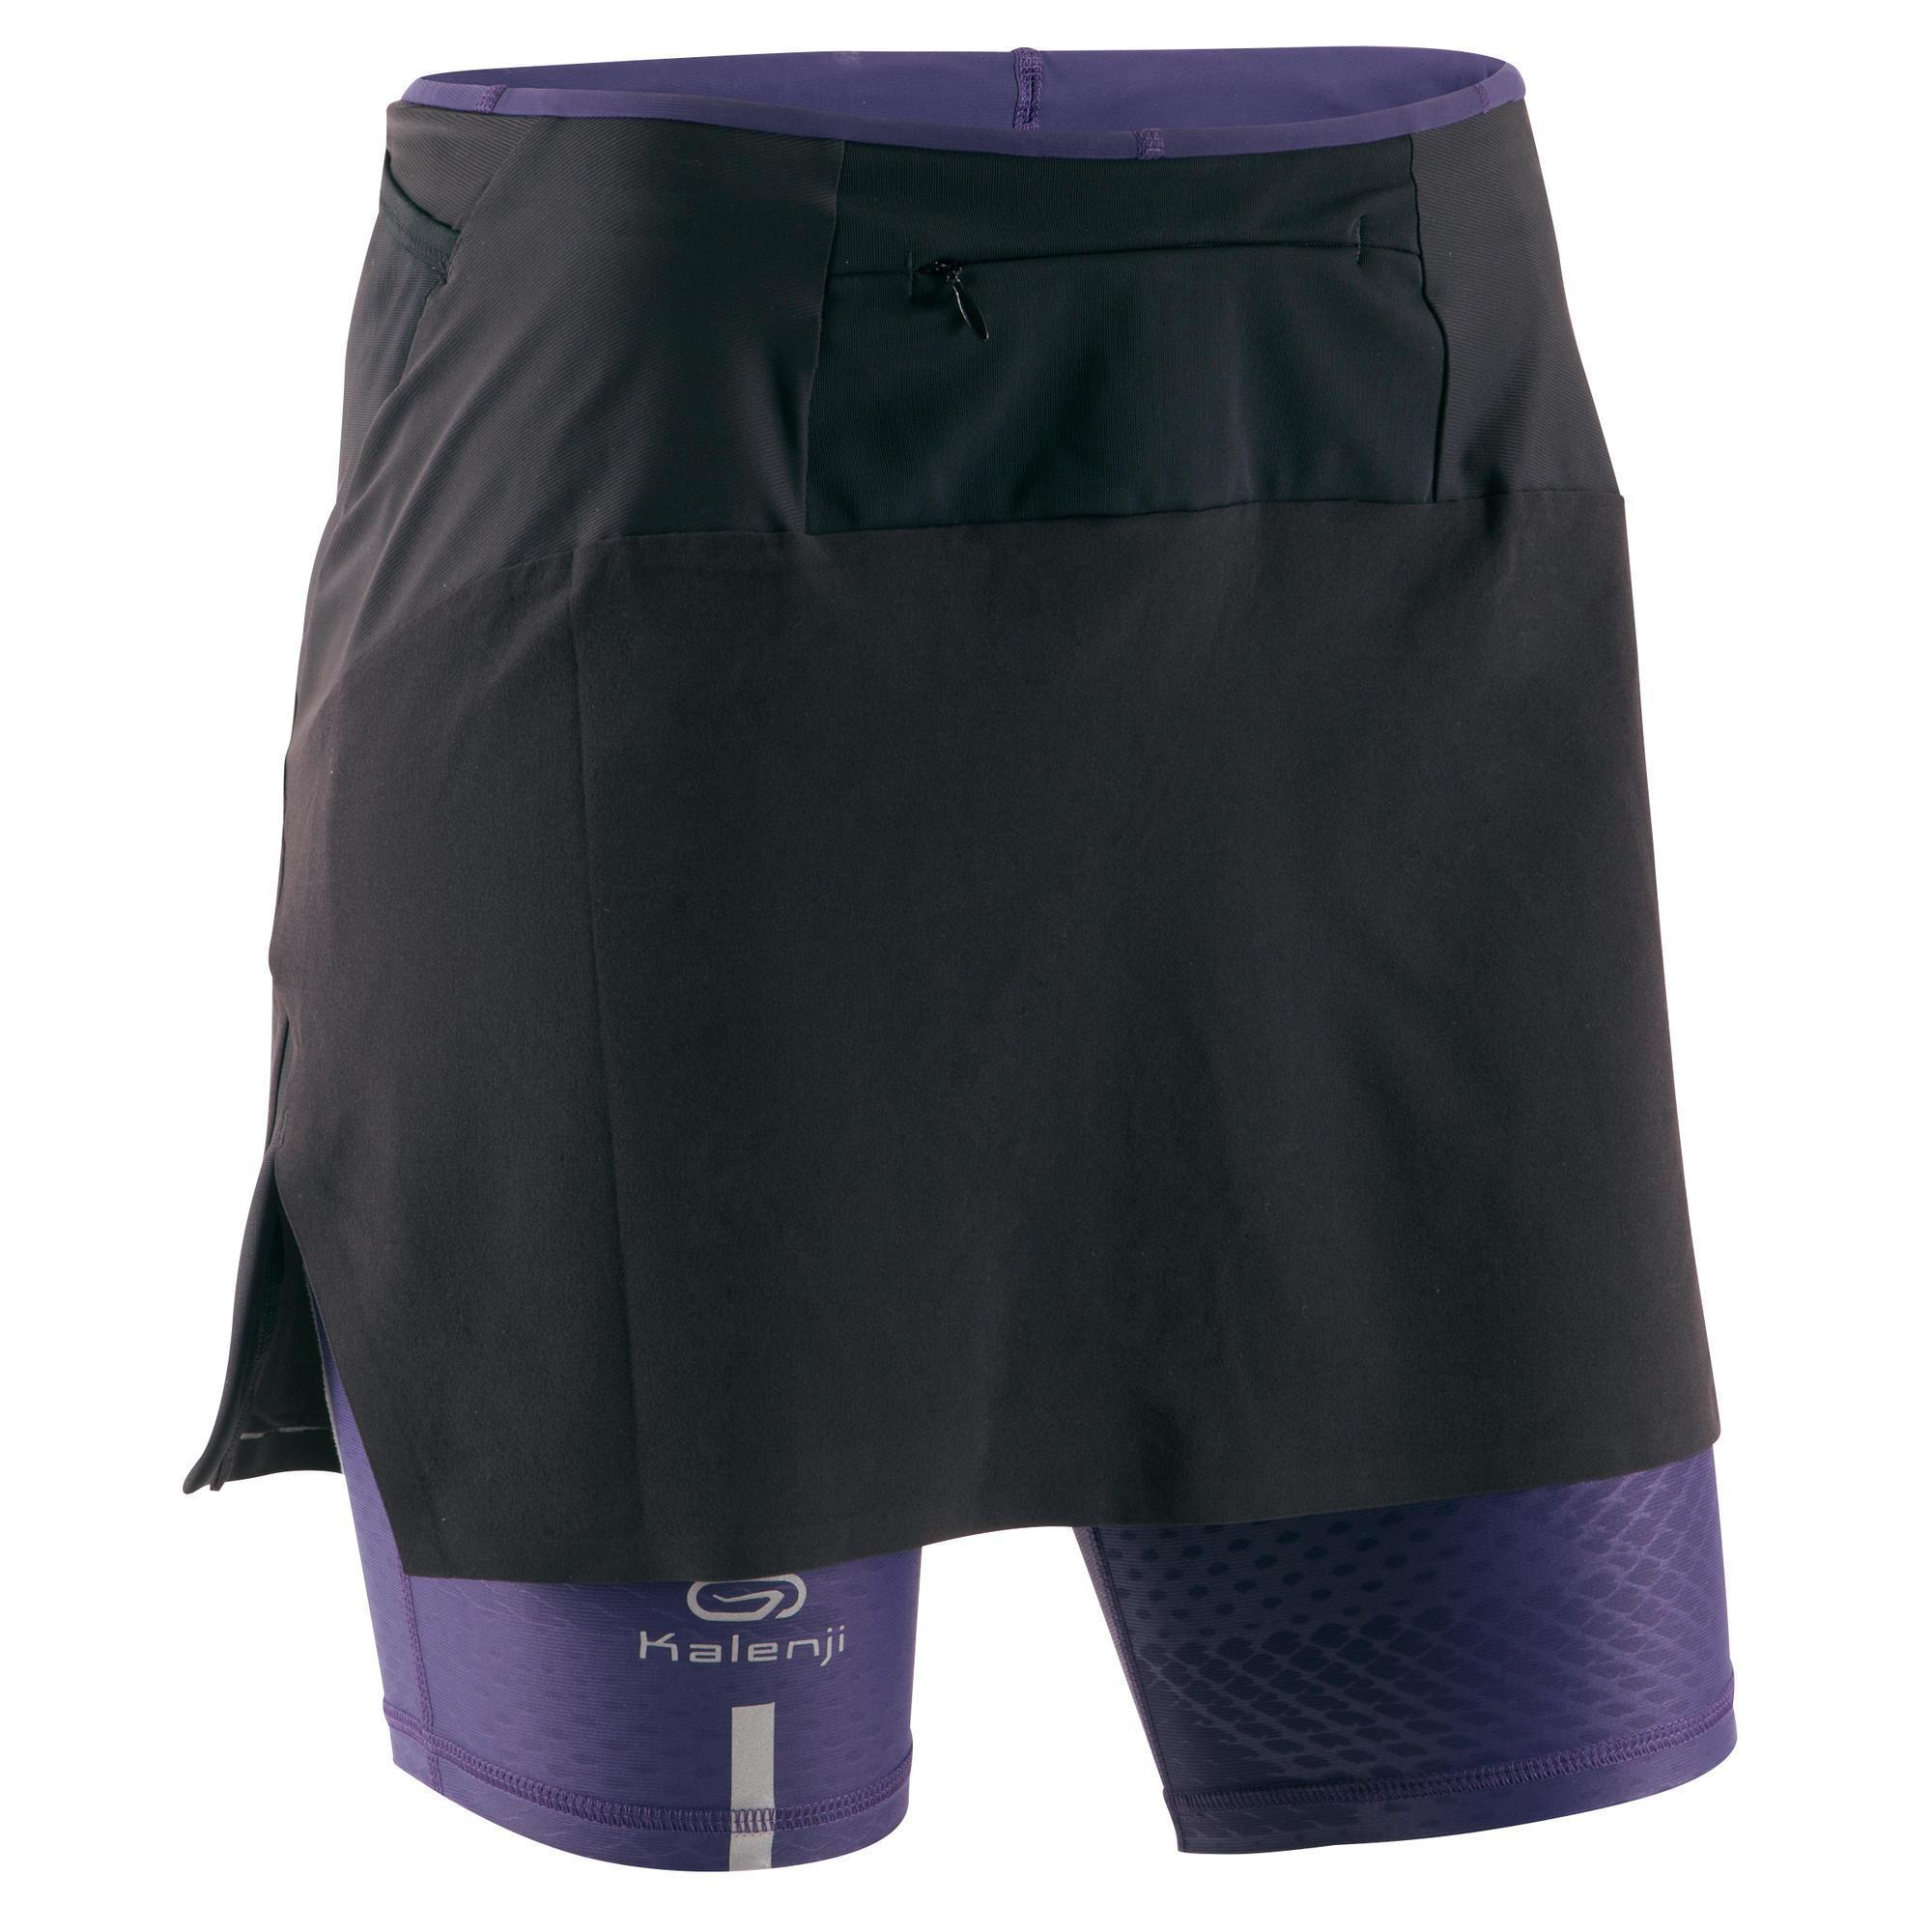 kanergy_womens_trail_running_skirt_tight_shorts_-_blackpurple_kalenji_8351829_187870.jpg?k=9eb9cdaf8537507b9c31f40adad98178